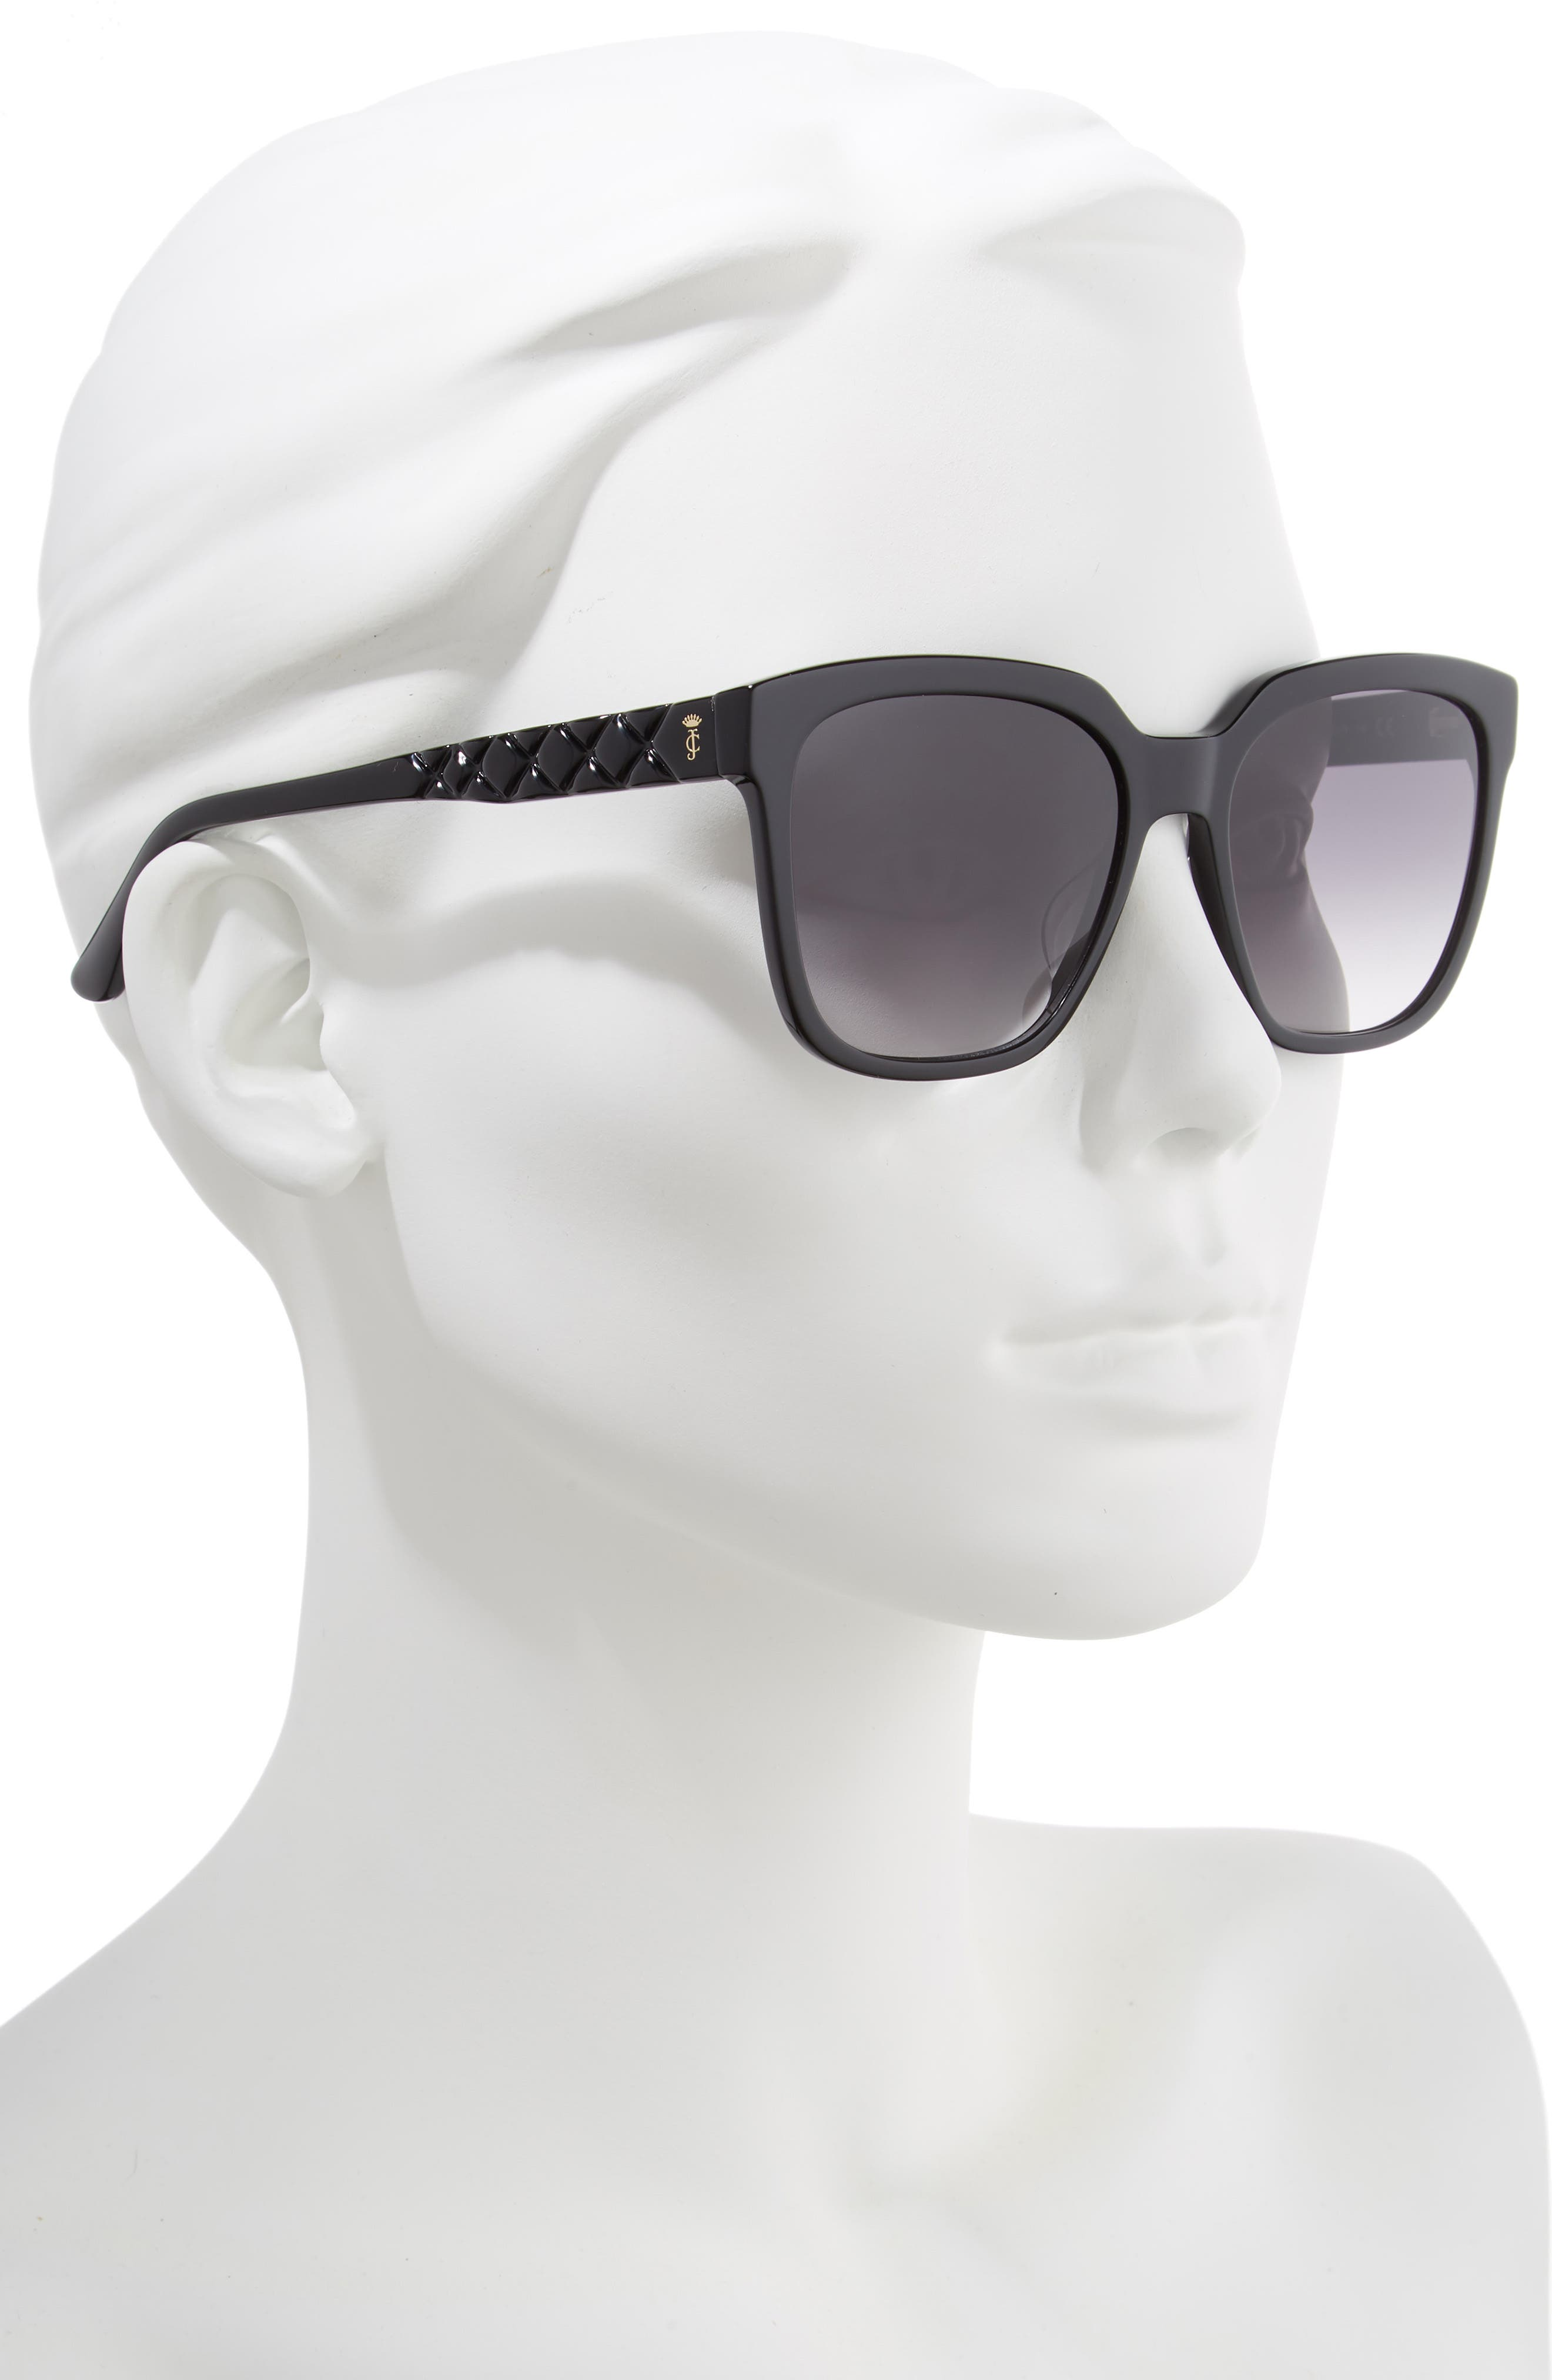 ba240753a9 Juicy Couture Sunglasses for Women